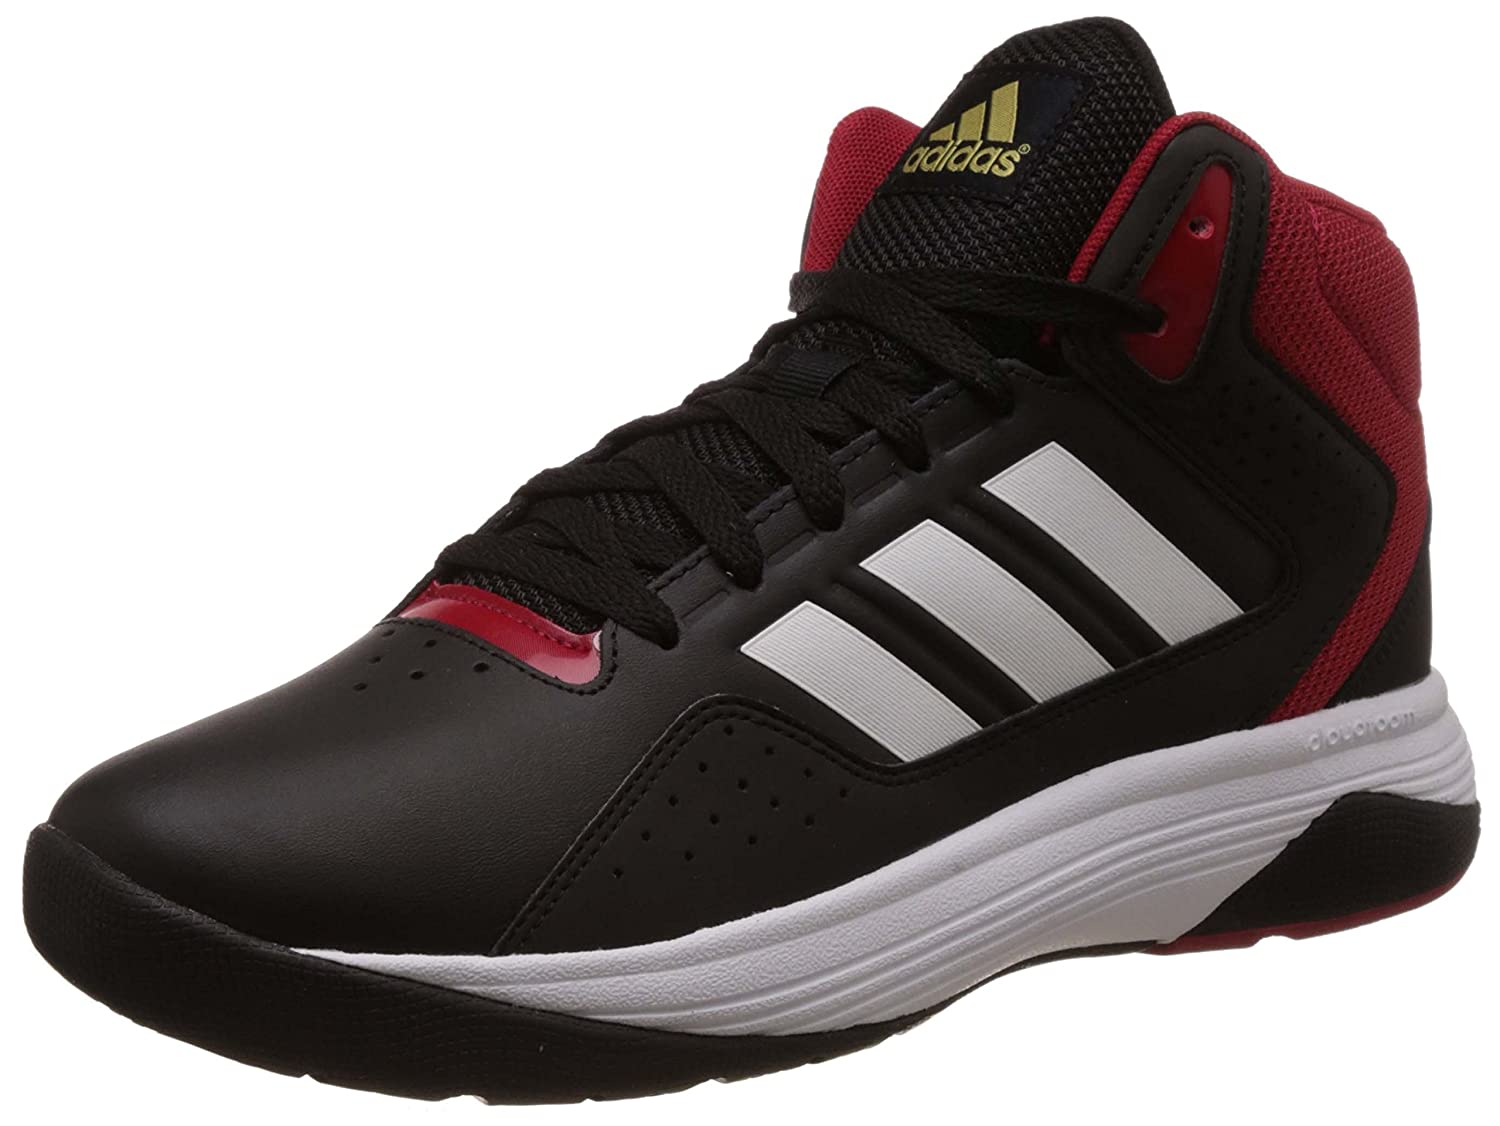 adidas neo Men's Cloudfoam Ilation Mid Basketball Shoes: Buy Online at Low  Prices in India - Amazon.in